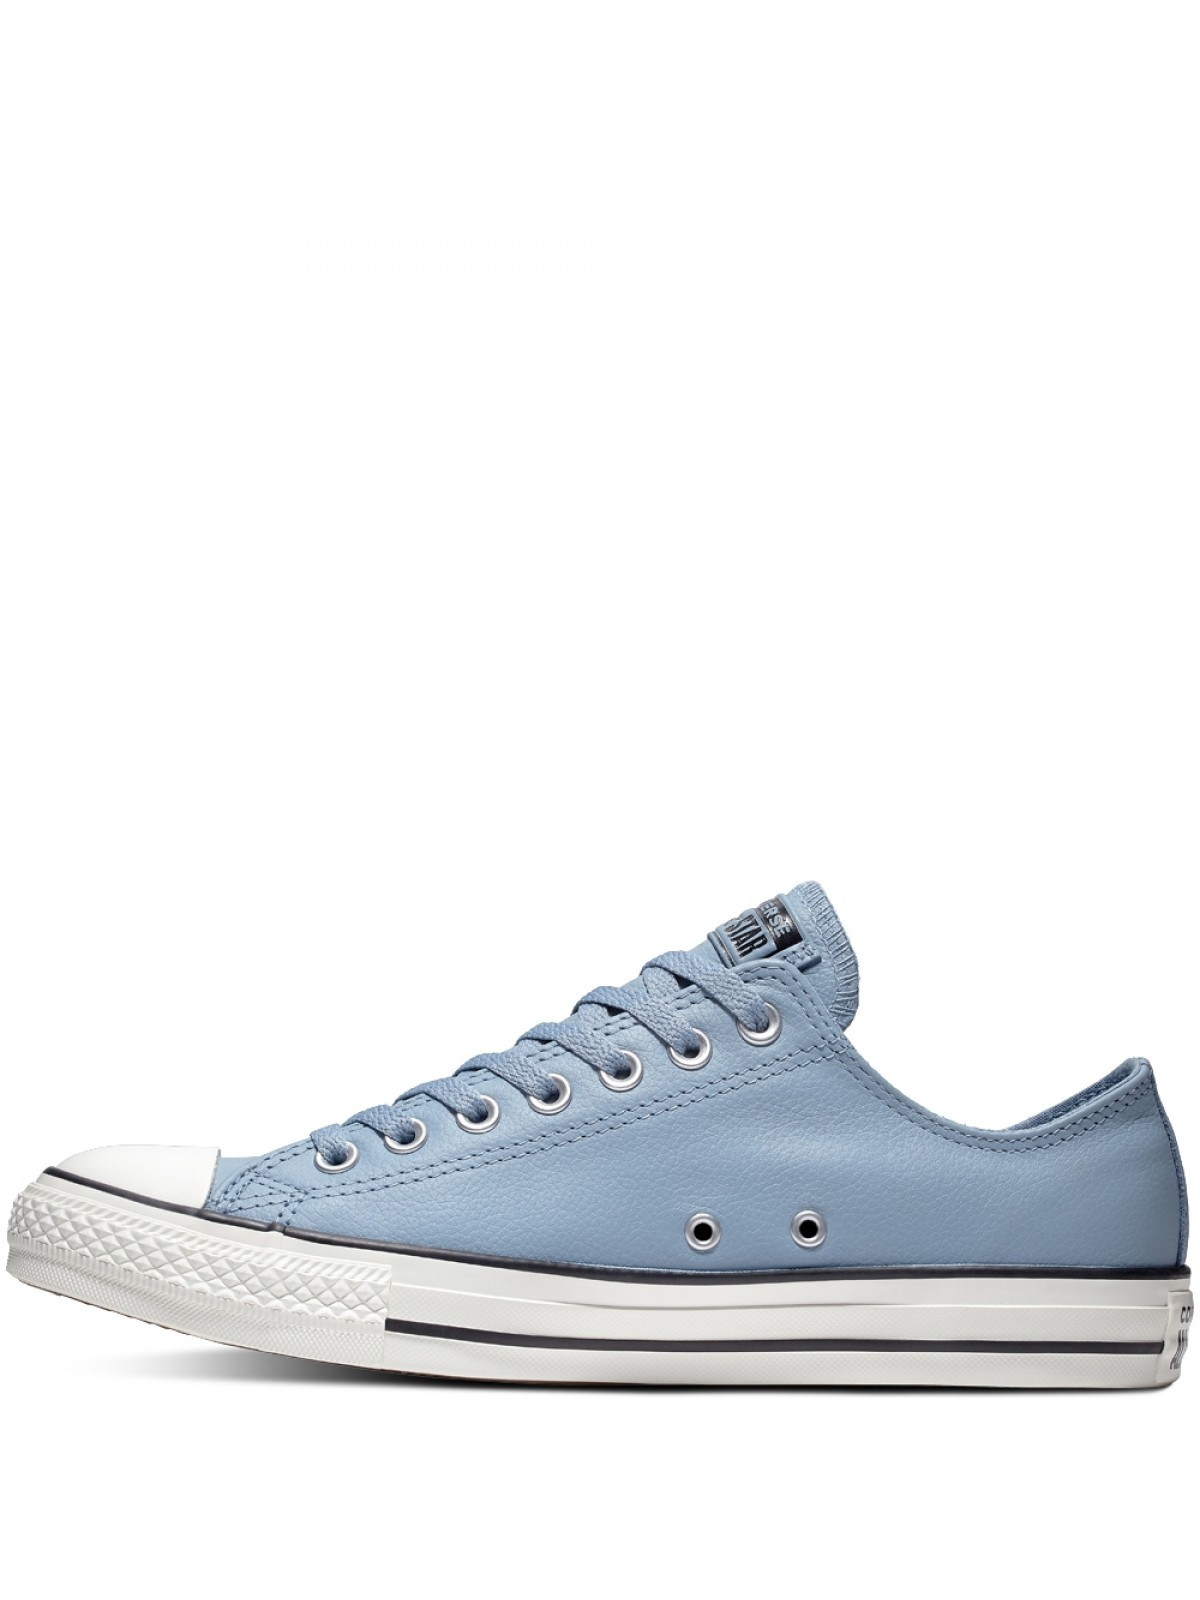 Converse Chuck Taylor all star basse cuir denim